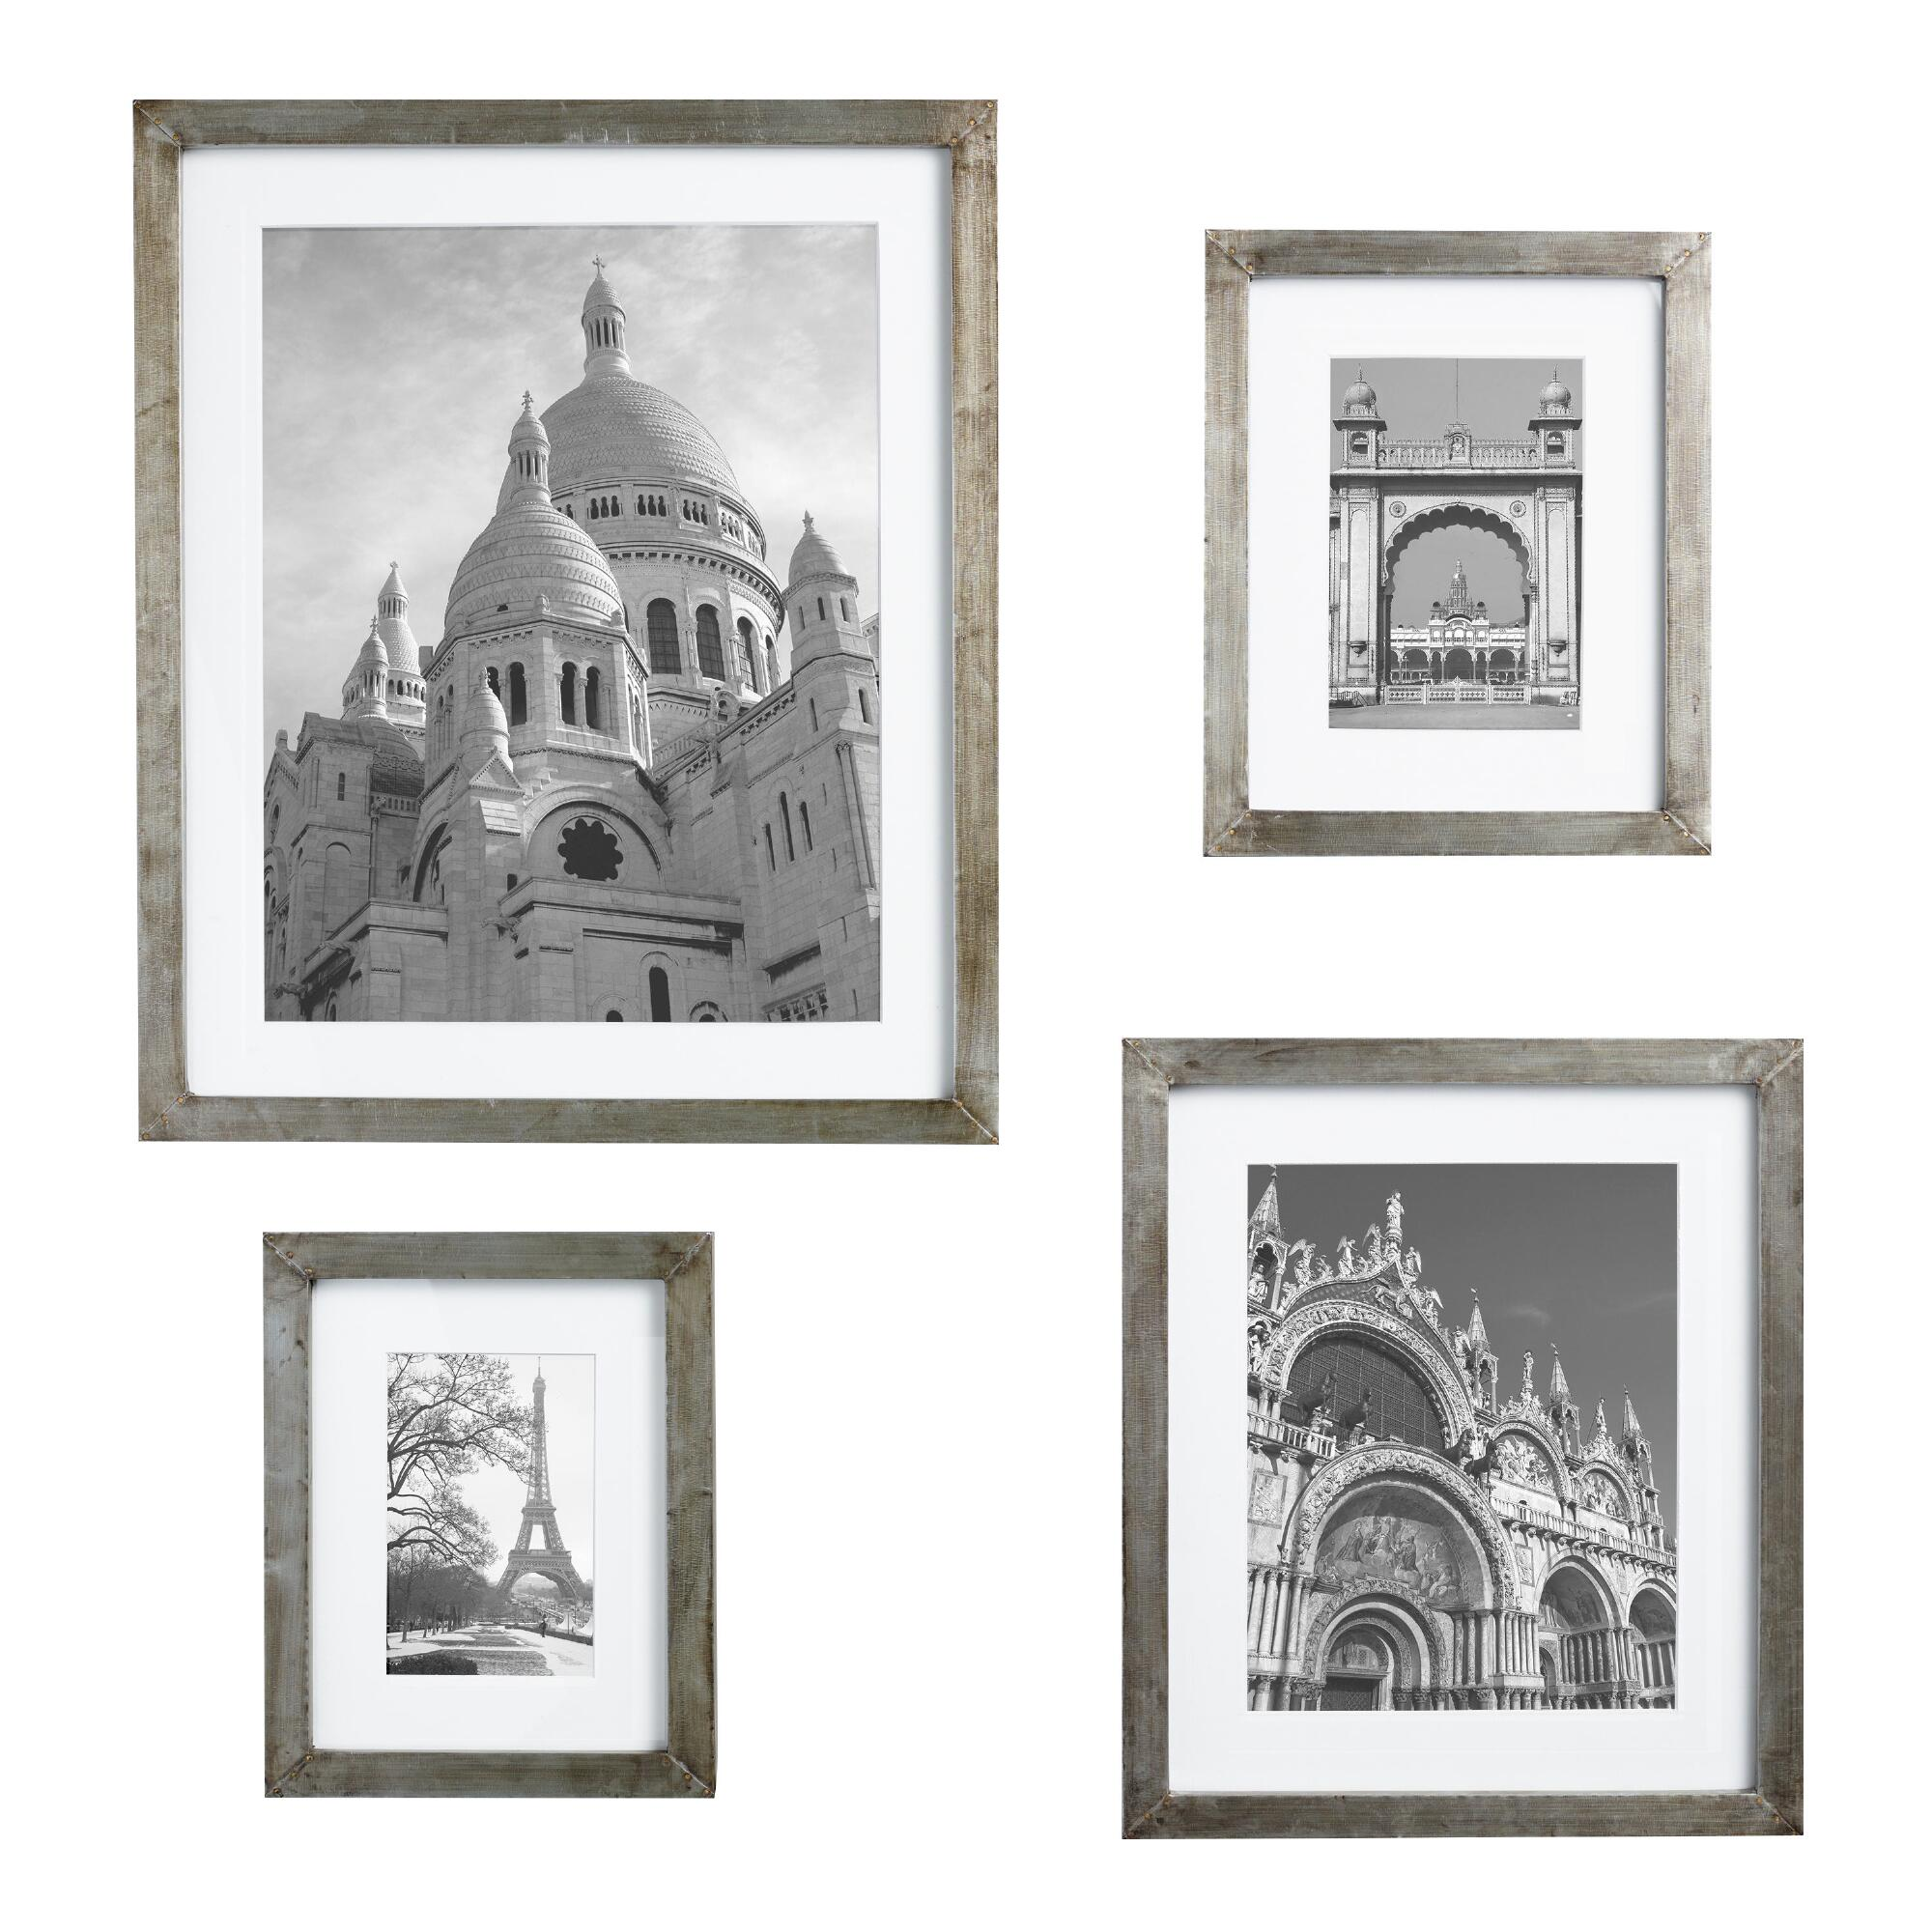 Wall Frames-Wall Art and Décor-Decor & Pillows | World Market